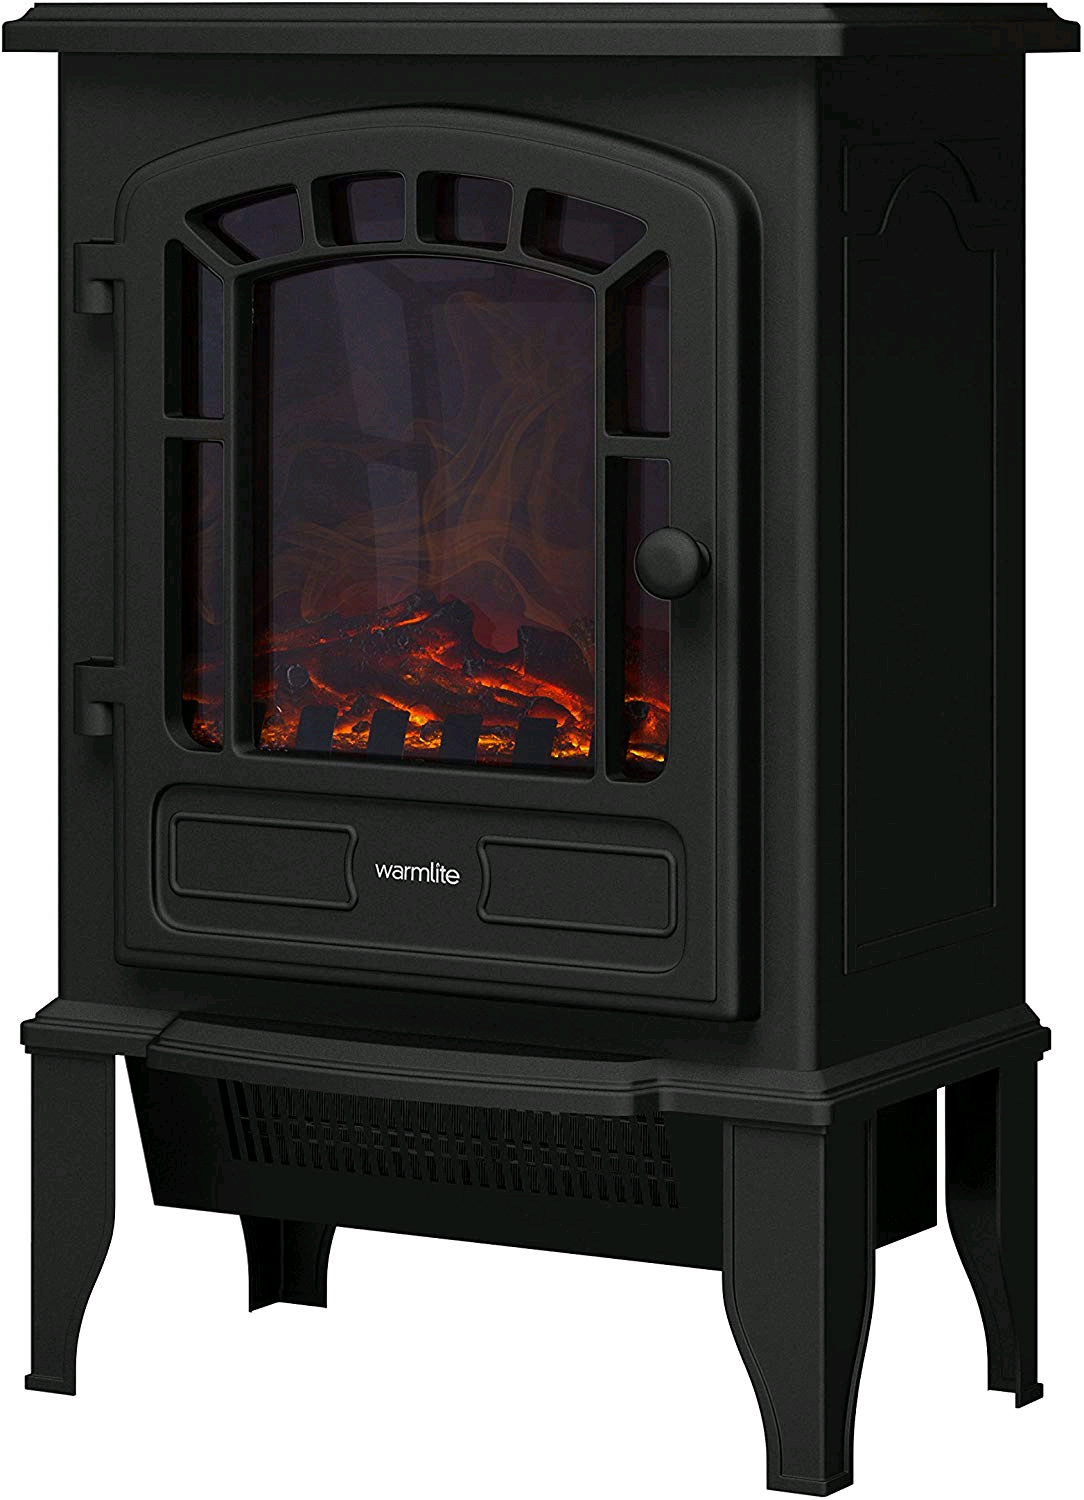 Warmlite 2Kw LED Stove Fire Black